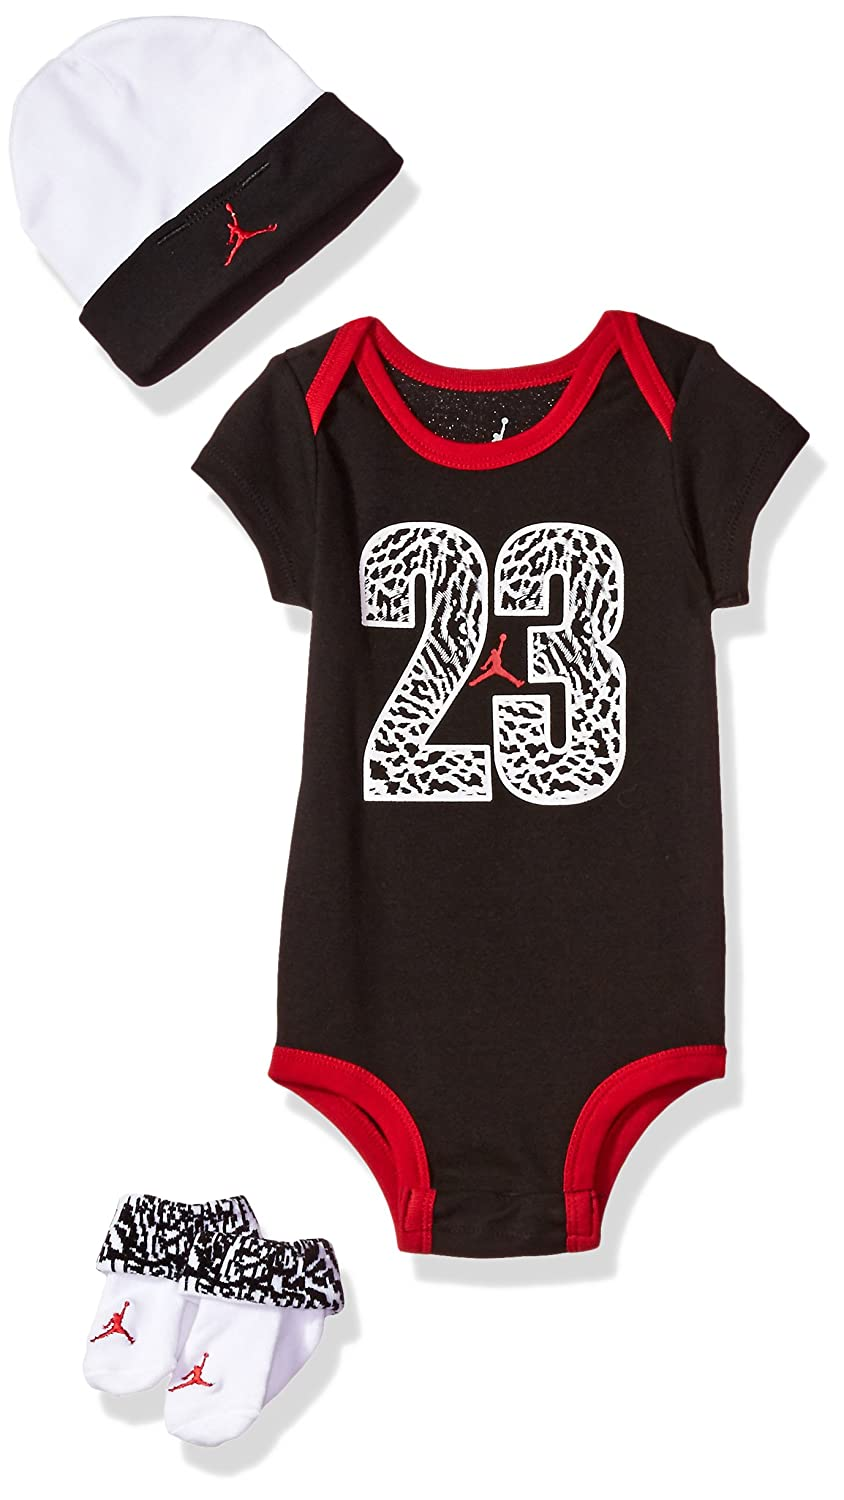 221b081e2b5b55 Amazon.com  Jordan Baby 3-Piece Set  Clothing